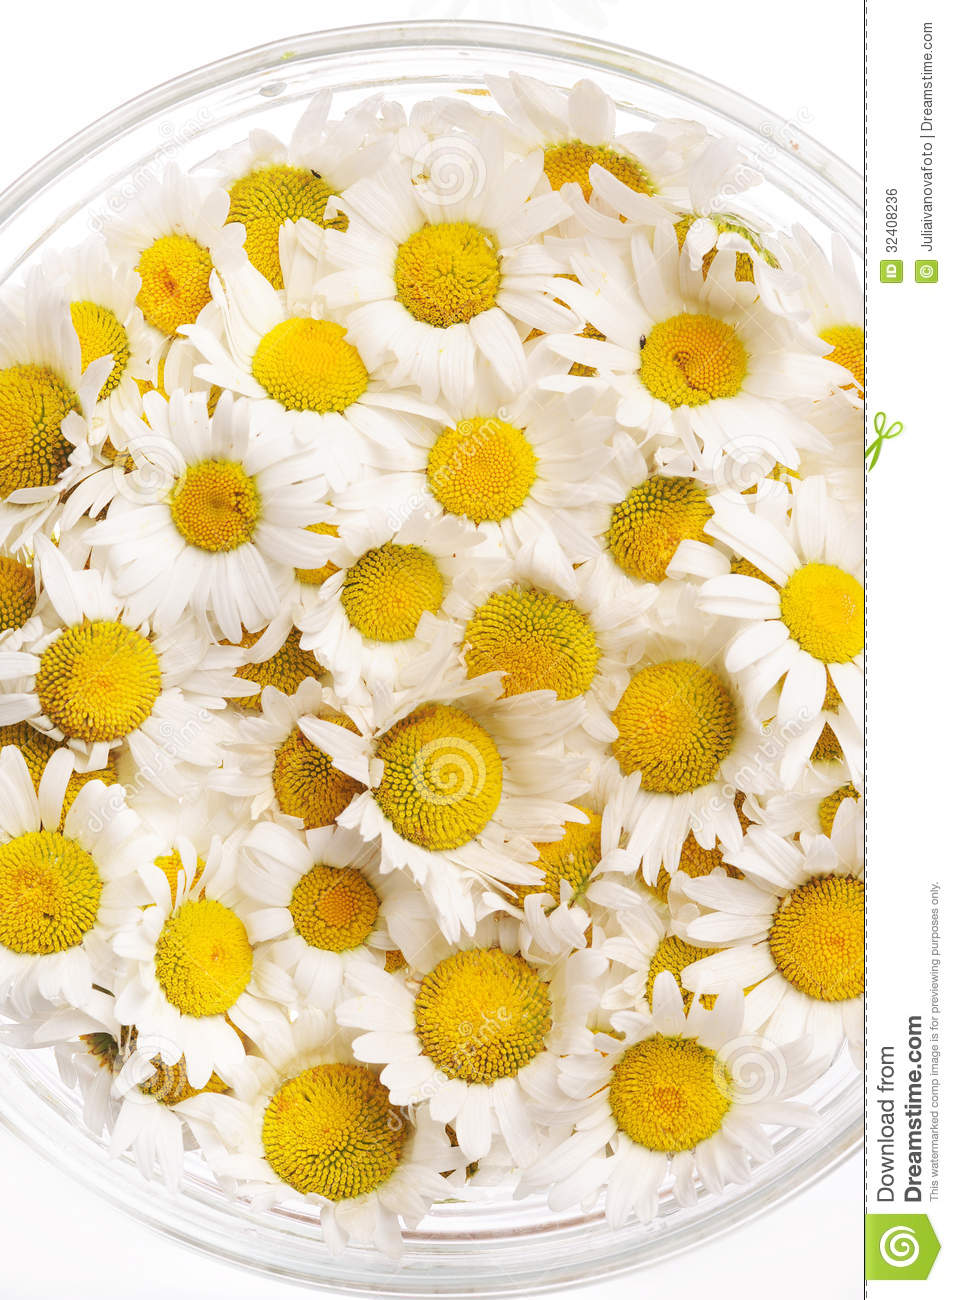 Daisies in a glass vase stock photo. Image of flowers ...